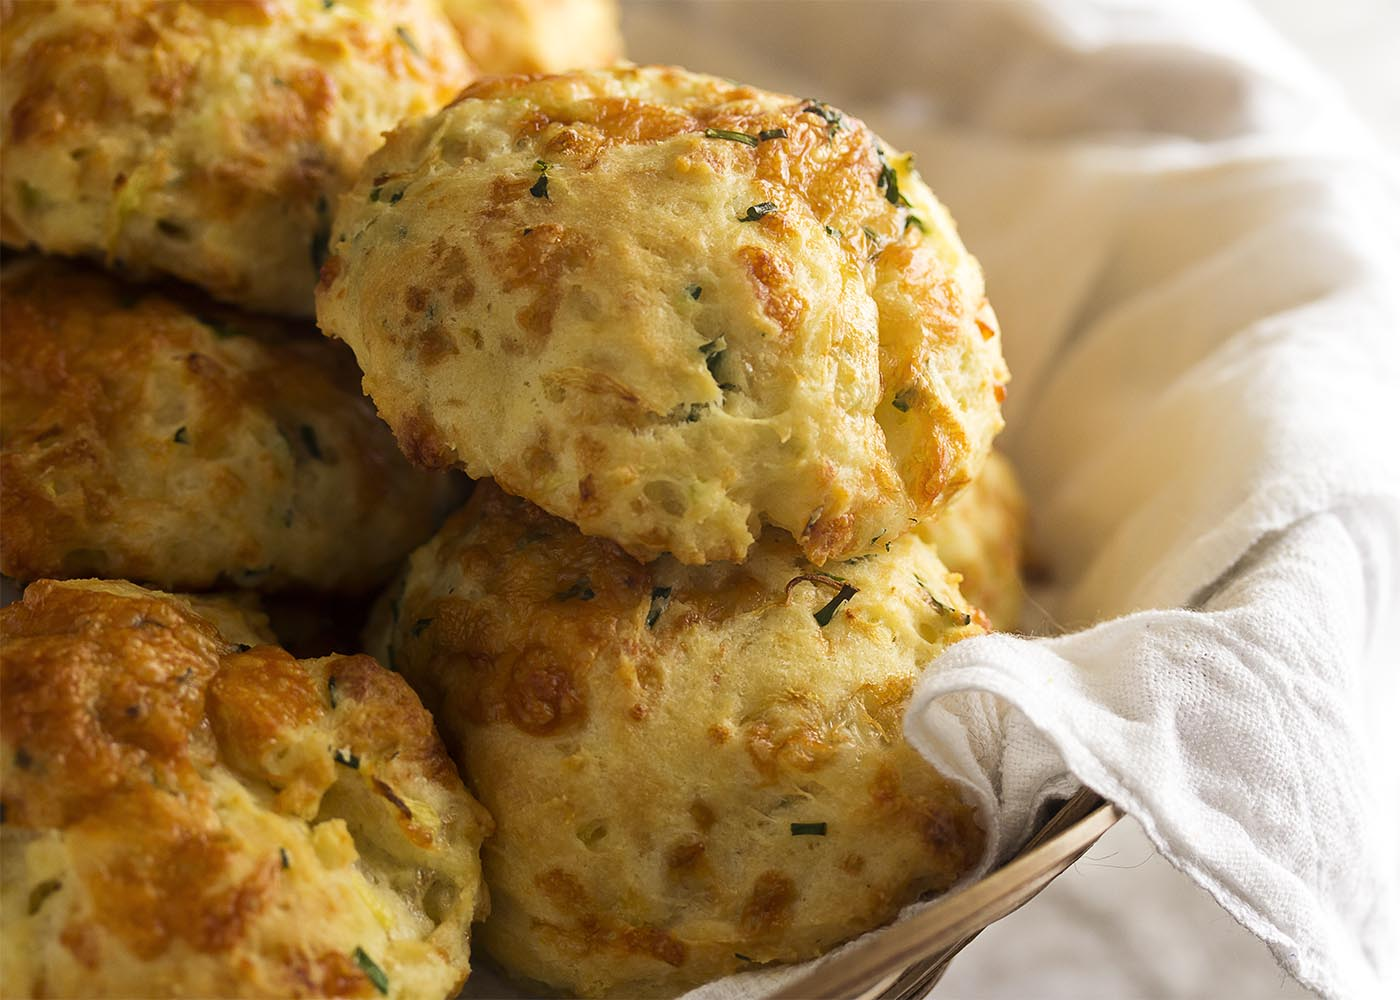 They are extra moist from the zucchini, tangy from the cheese and buttermilk, and have a little zing from the fresh herbs. These are drop biscuits taken to the next level!